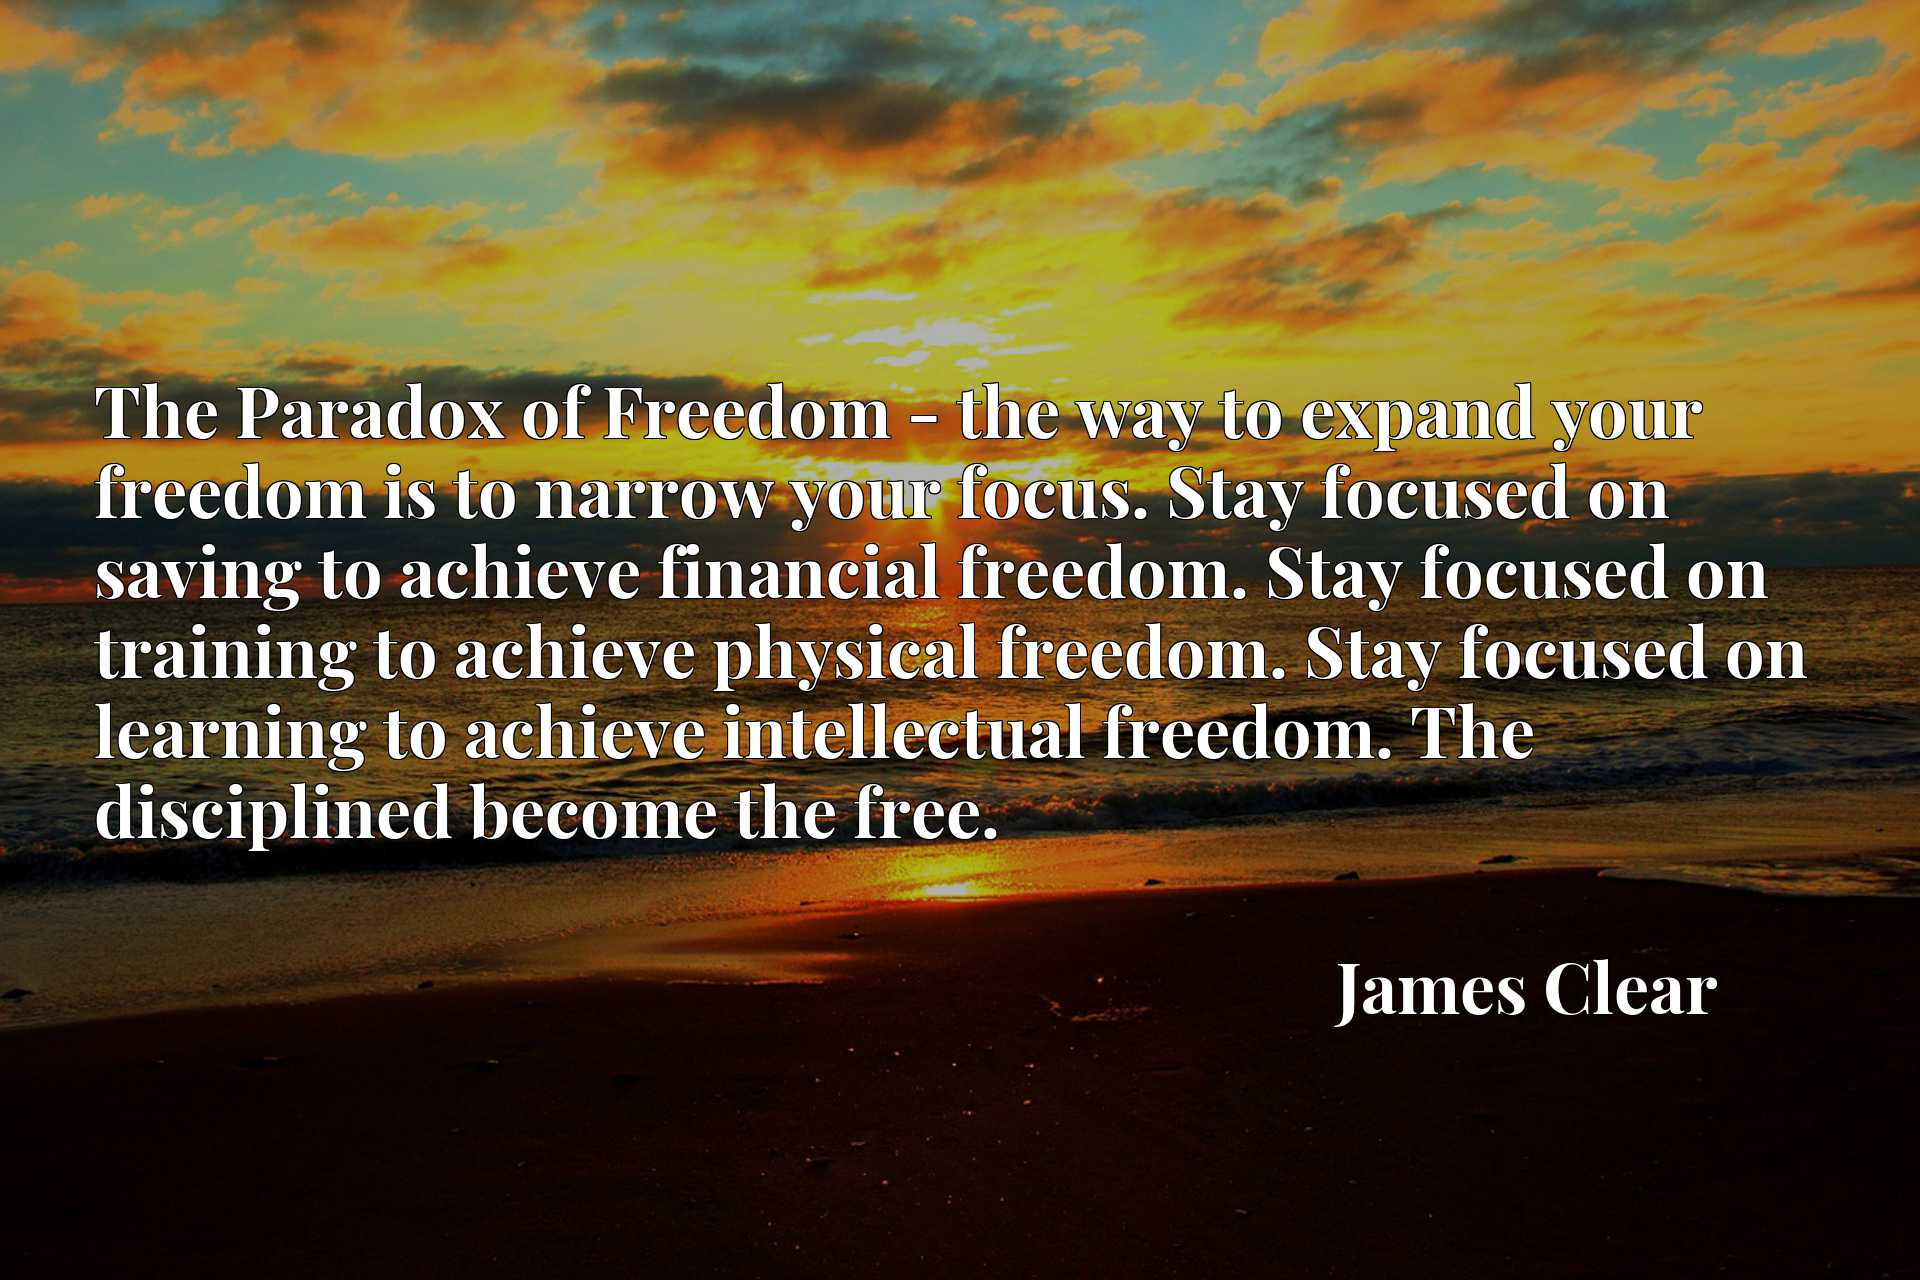 The Paradox of Freedom - the way to expand your freedom is to narrow your focus. Stay focused on saving to achieve financial freedom. Stay focused on training to achieve physical freedom. Stay focused on learning to achieve intellectual freedom. The disciplined become the free.